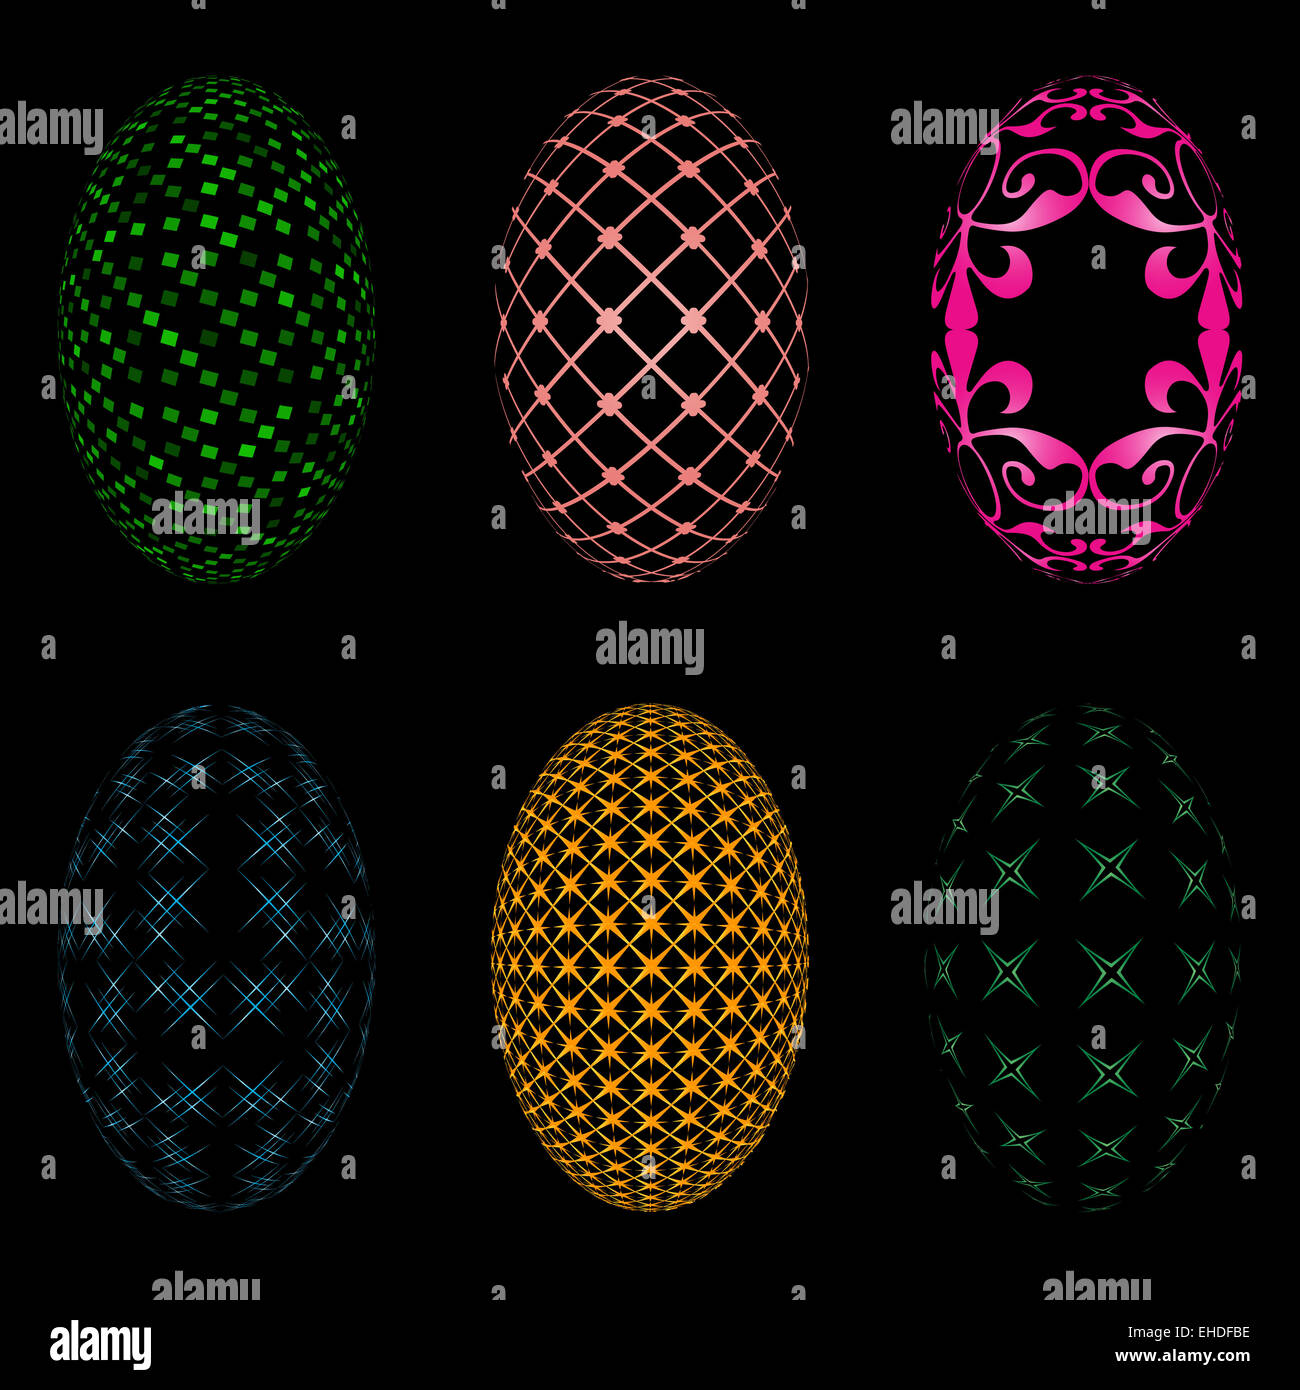 Illustration of six easter eggs on a black background - Stock Image